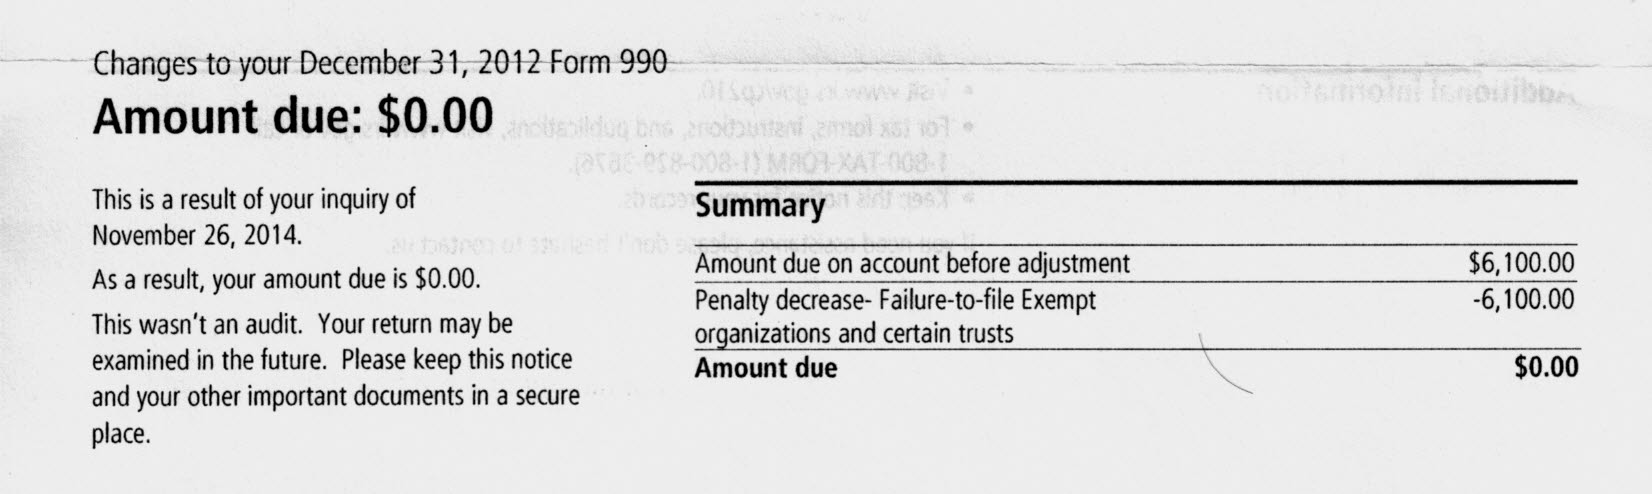 irs nonprofit penalty abatement letter image